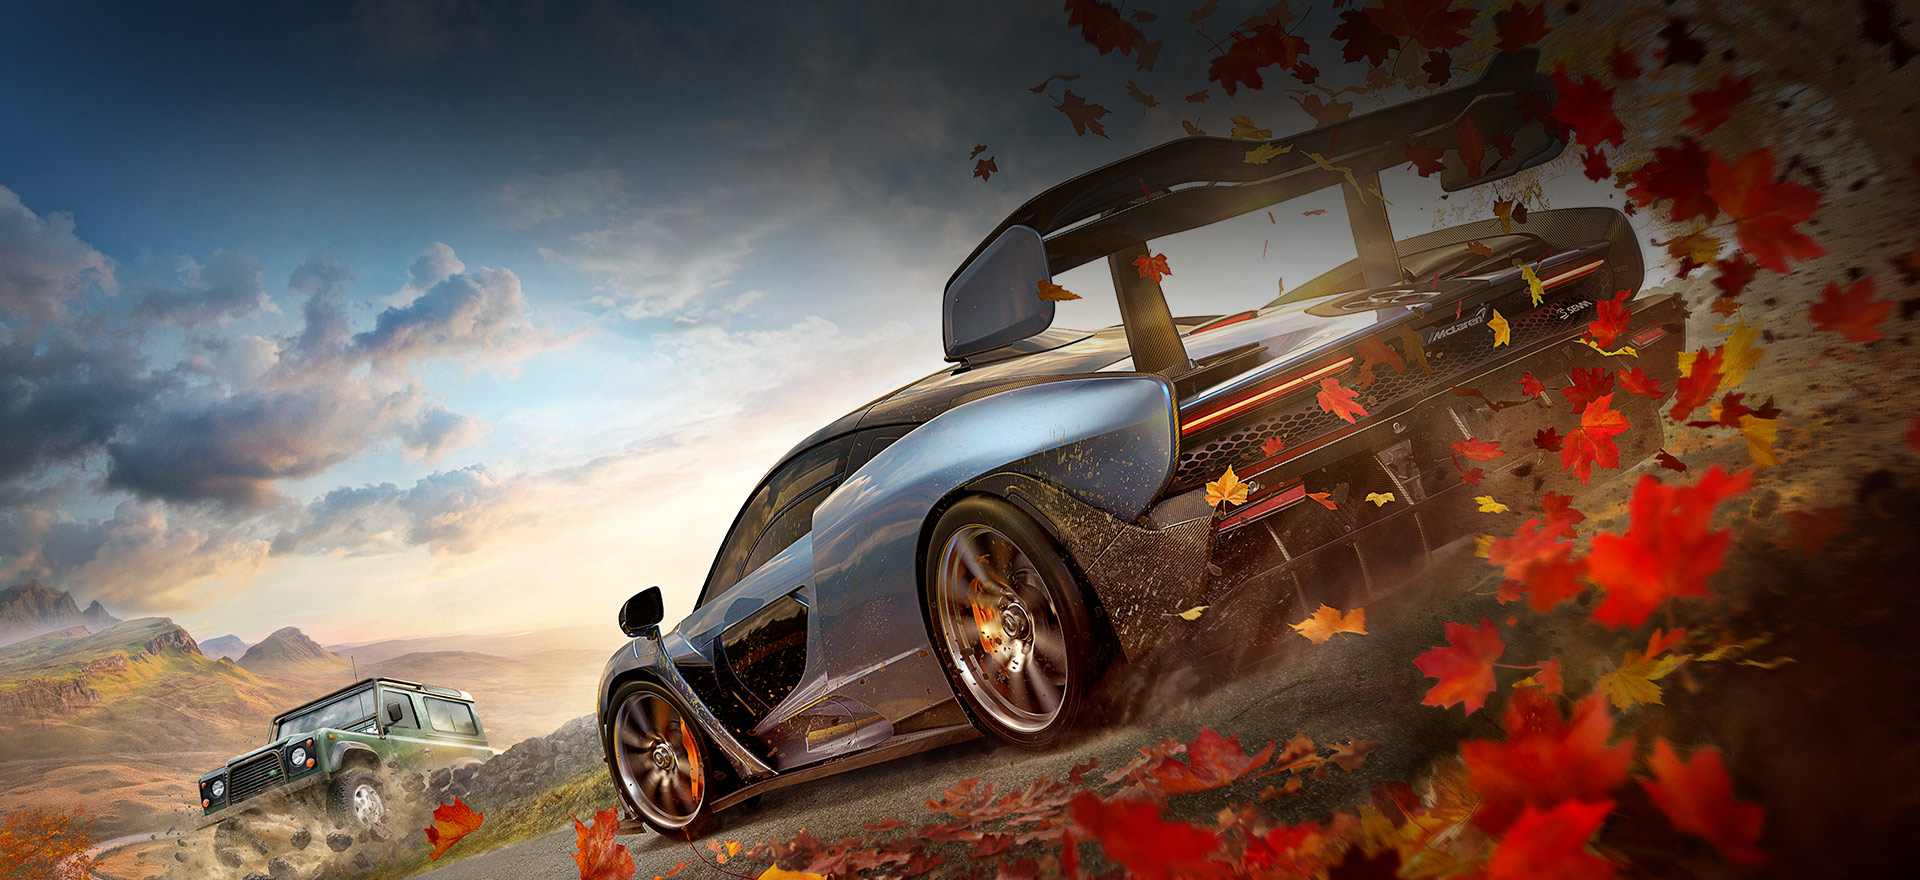 Forza Horizon 4 with McLaren driving though red and yellow leaves